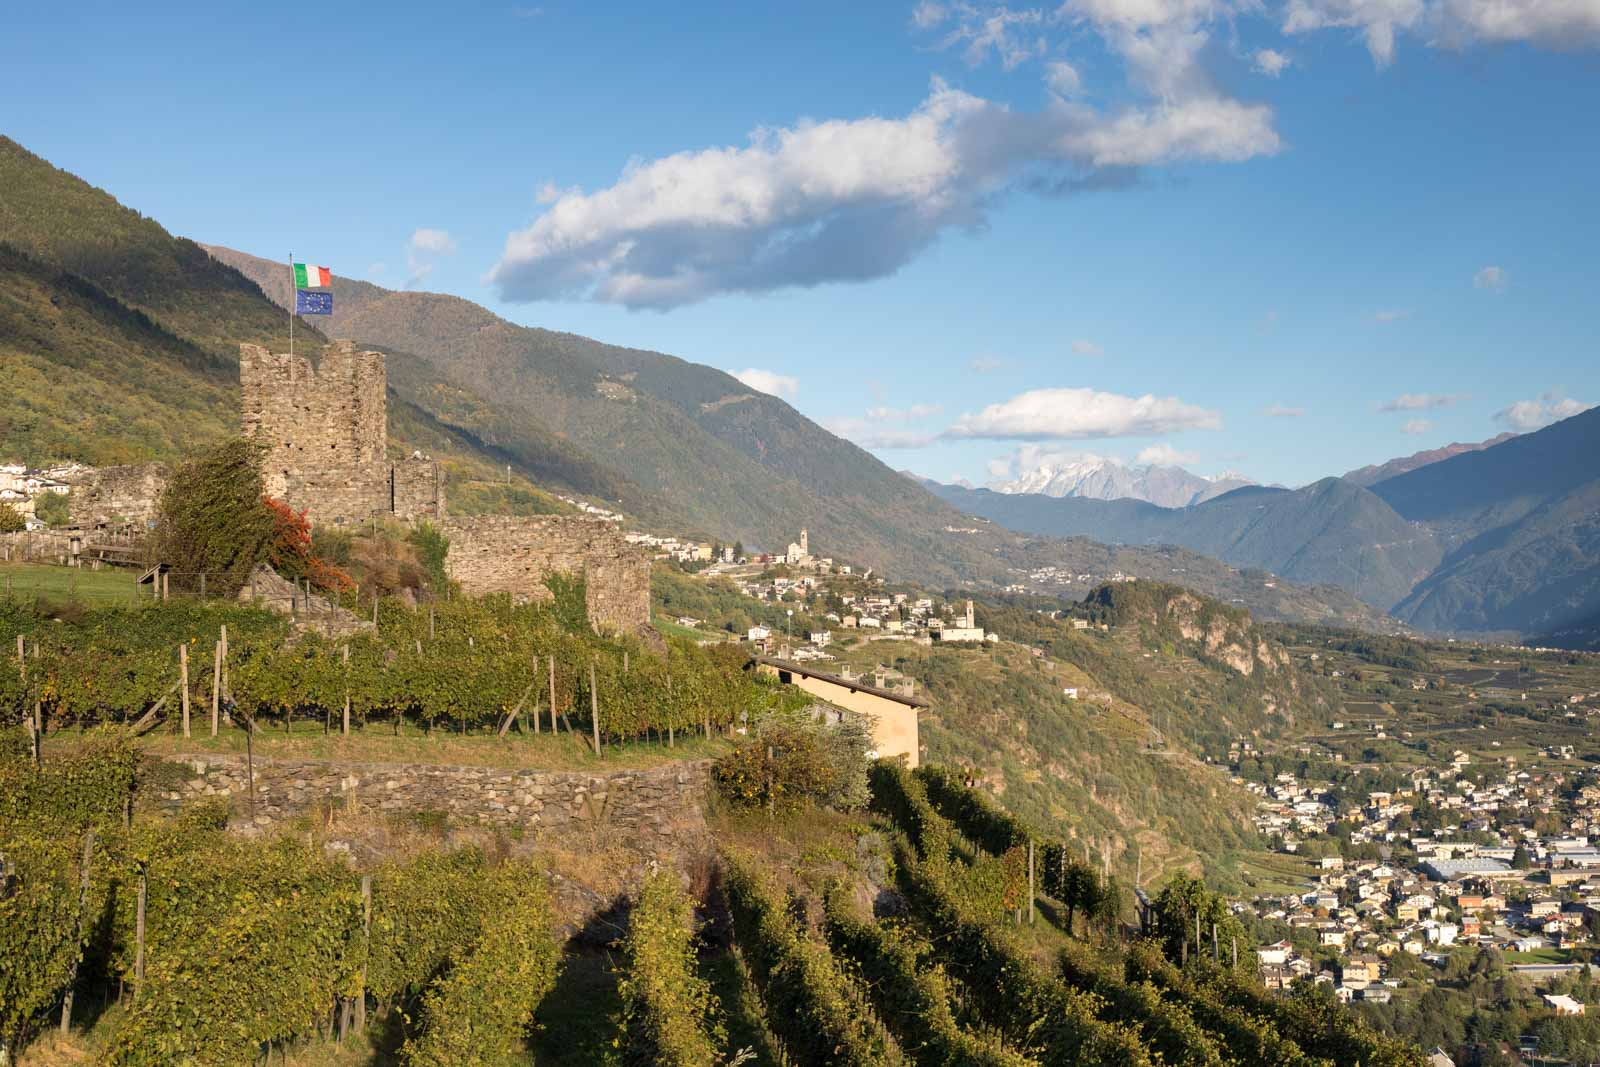 The Grumello castle and views up the Adda River Valley in the heart of Valtellina. ©Kevin Day/Opening a Bottle